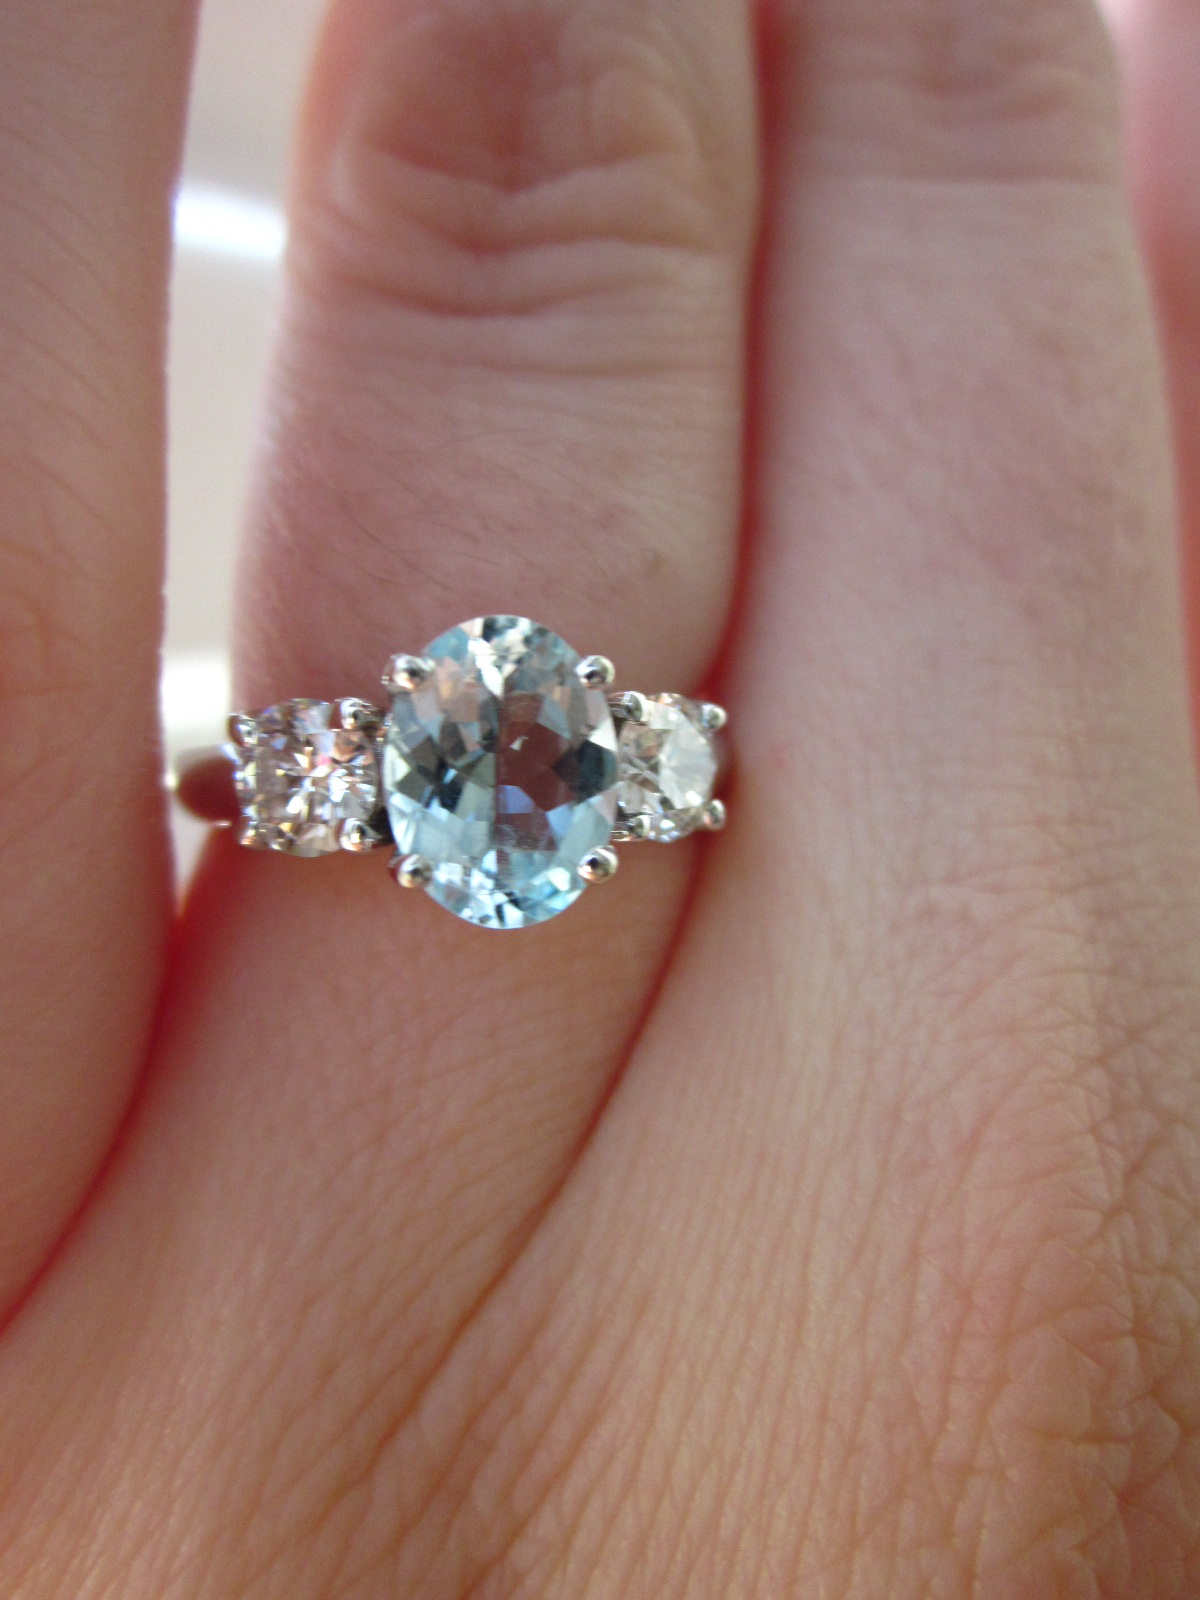 We Opted For An Oval Cut Pale Aquamarine Center Stone Flanked By Two Round  Diamonds Honestly, I Don't Have The Exact Details On The Stones Because So  Seems